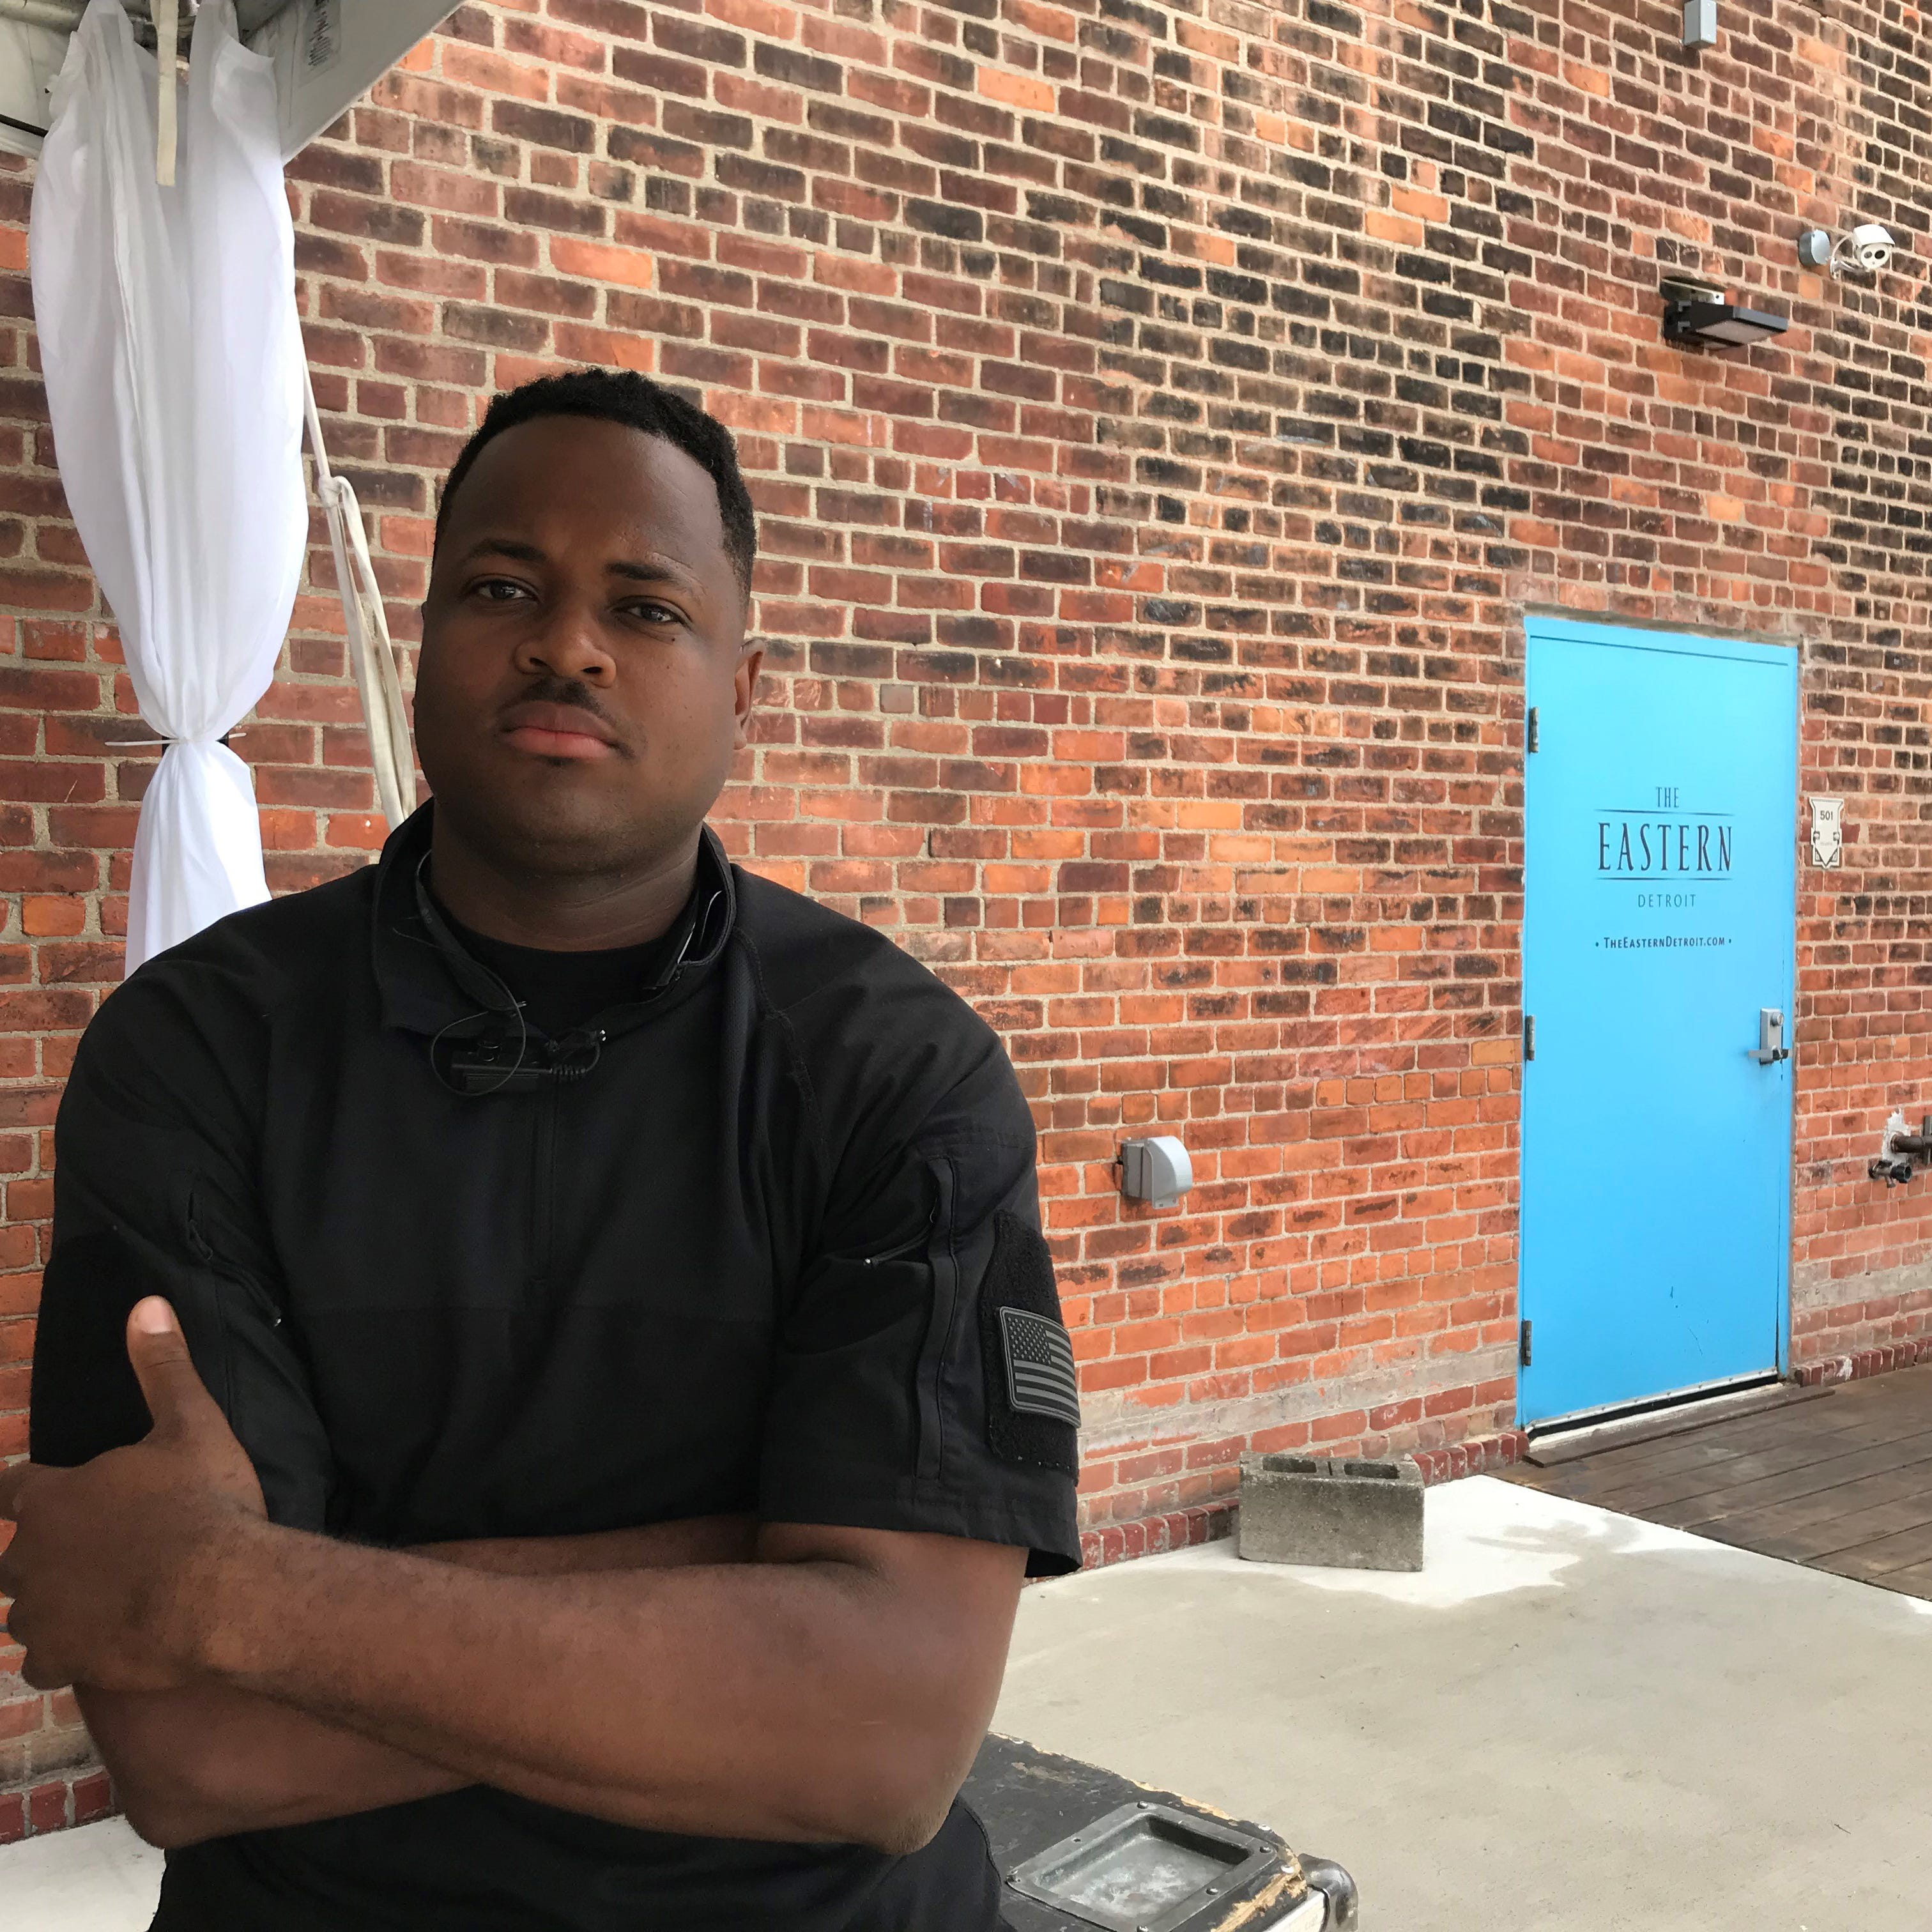 Eastern Market suspends company after spitting incident